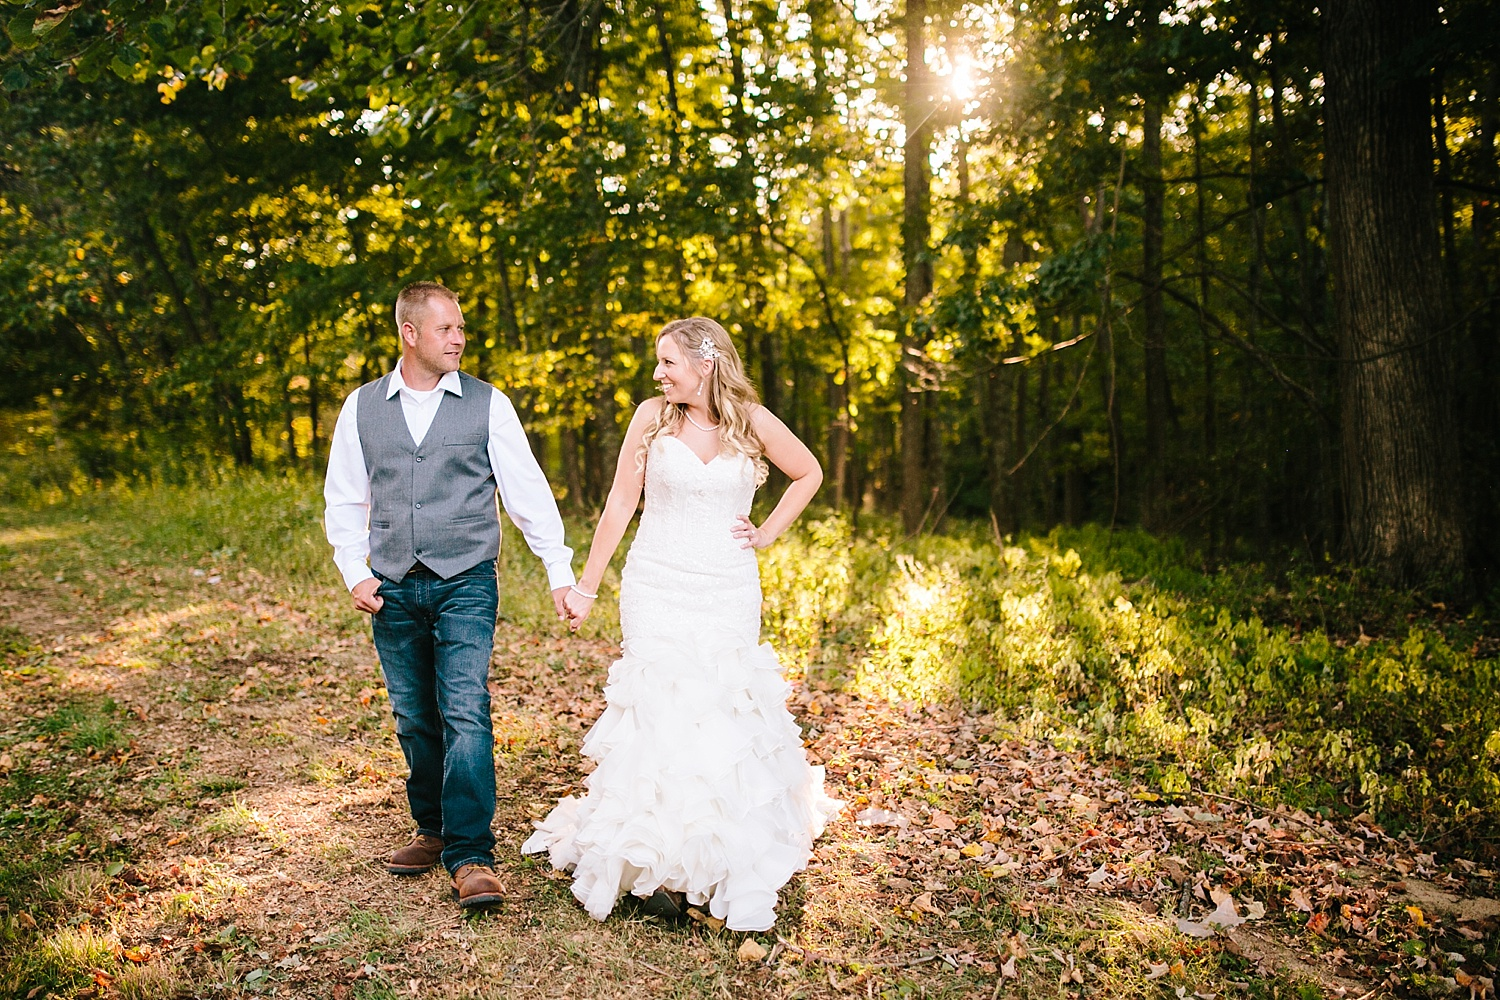 jennyryan_newbeginnings_farmstead_upstatenewyork_wedding_image103.jpg